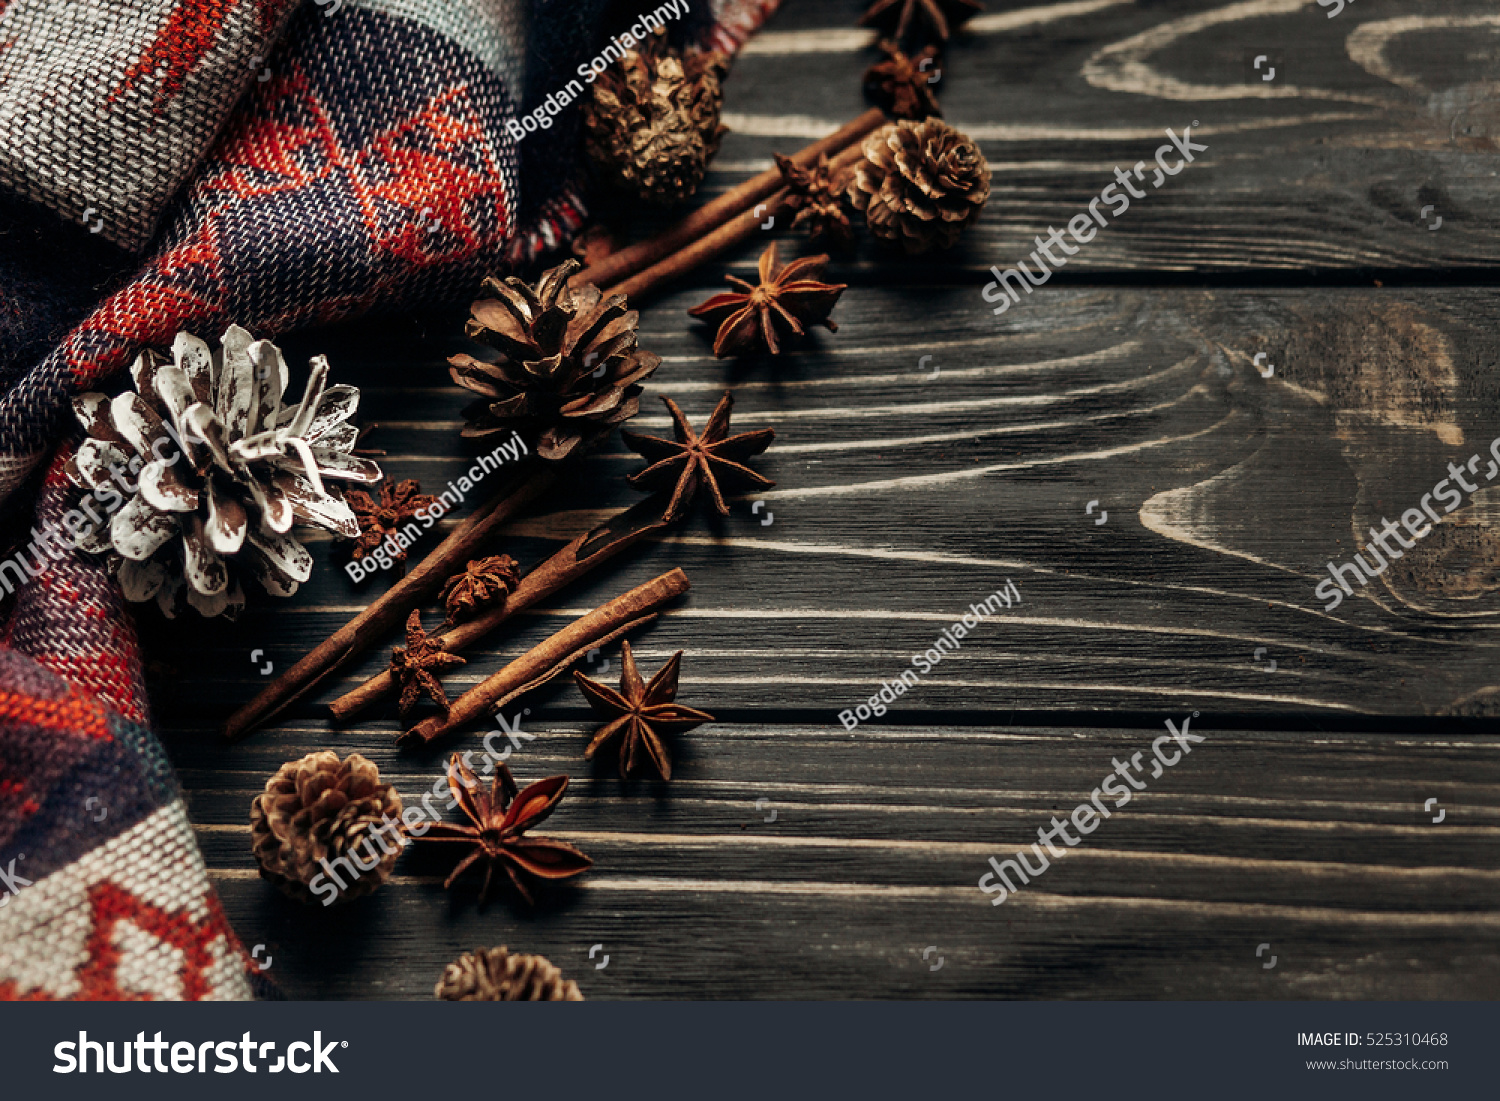 Stylish Rustic Winter Or Autumn Wallpaper With Anise Cinnamon And Pine Cones On Wooden Background